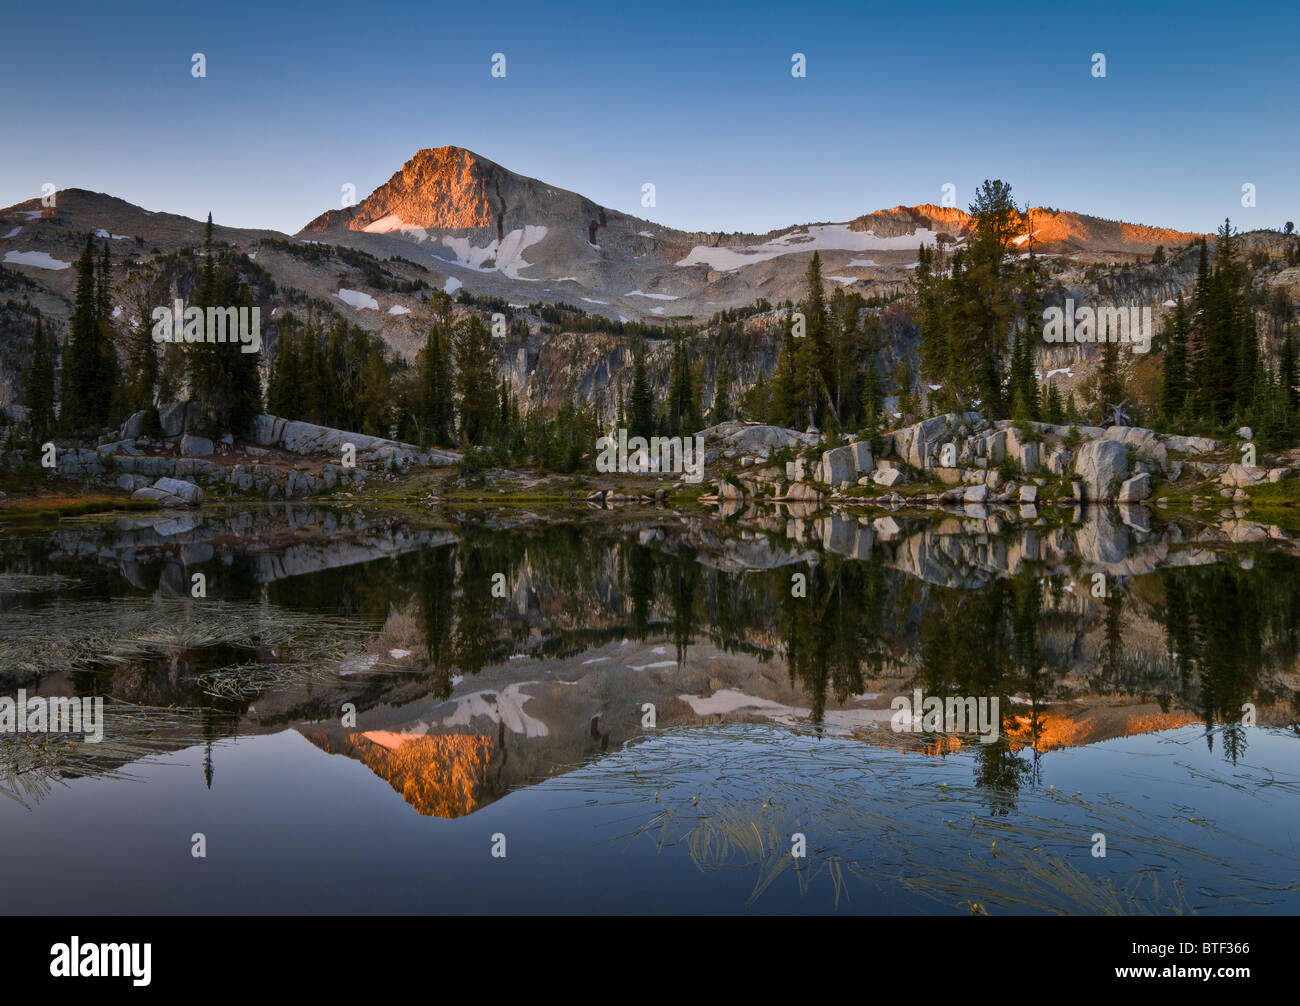 Eagle Cap mountain and Sunshine Lake at sunrise; Lakes Basin, Eagle Cap Wilderness, Wallowa Mountains, northeastern - Stock Image